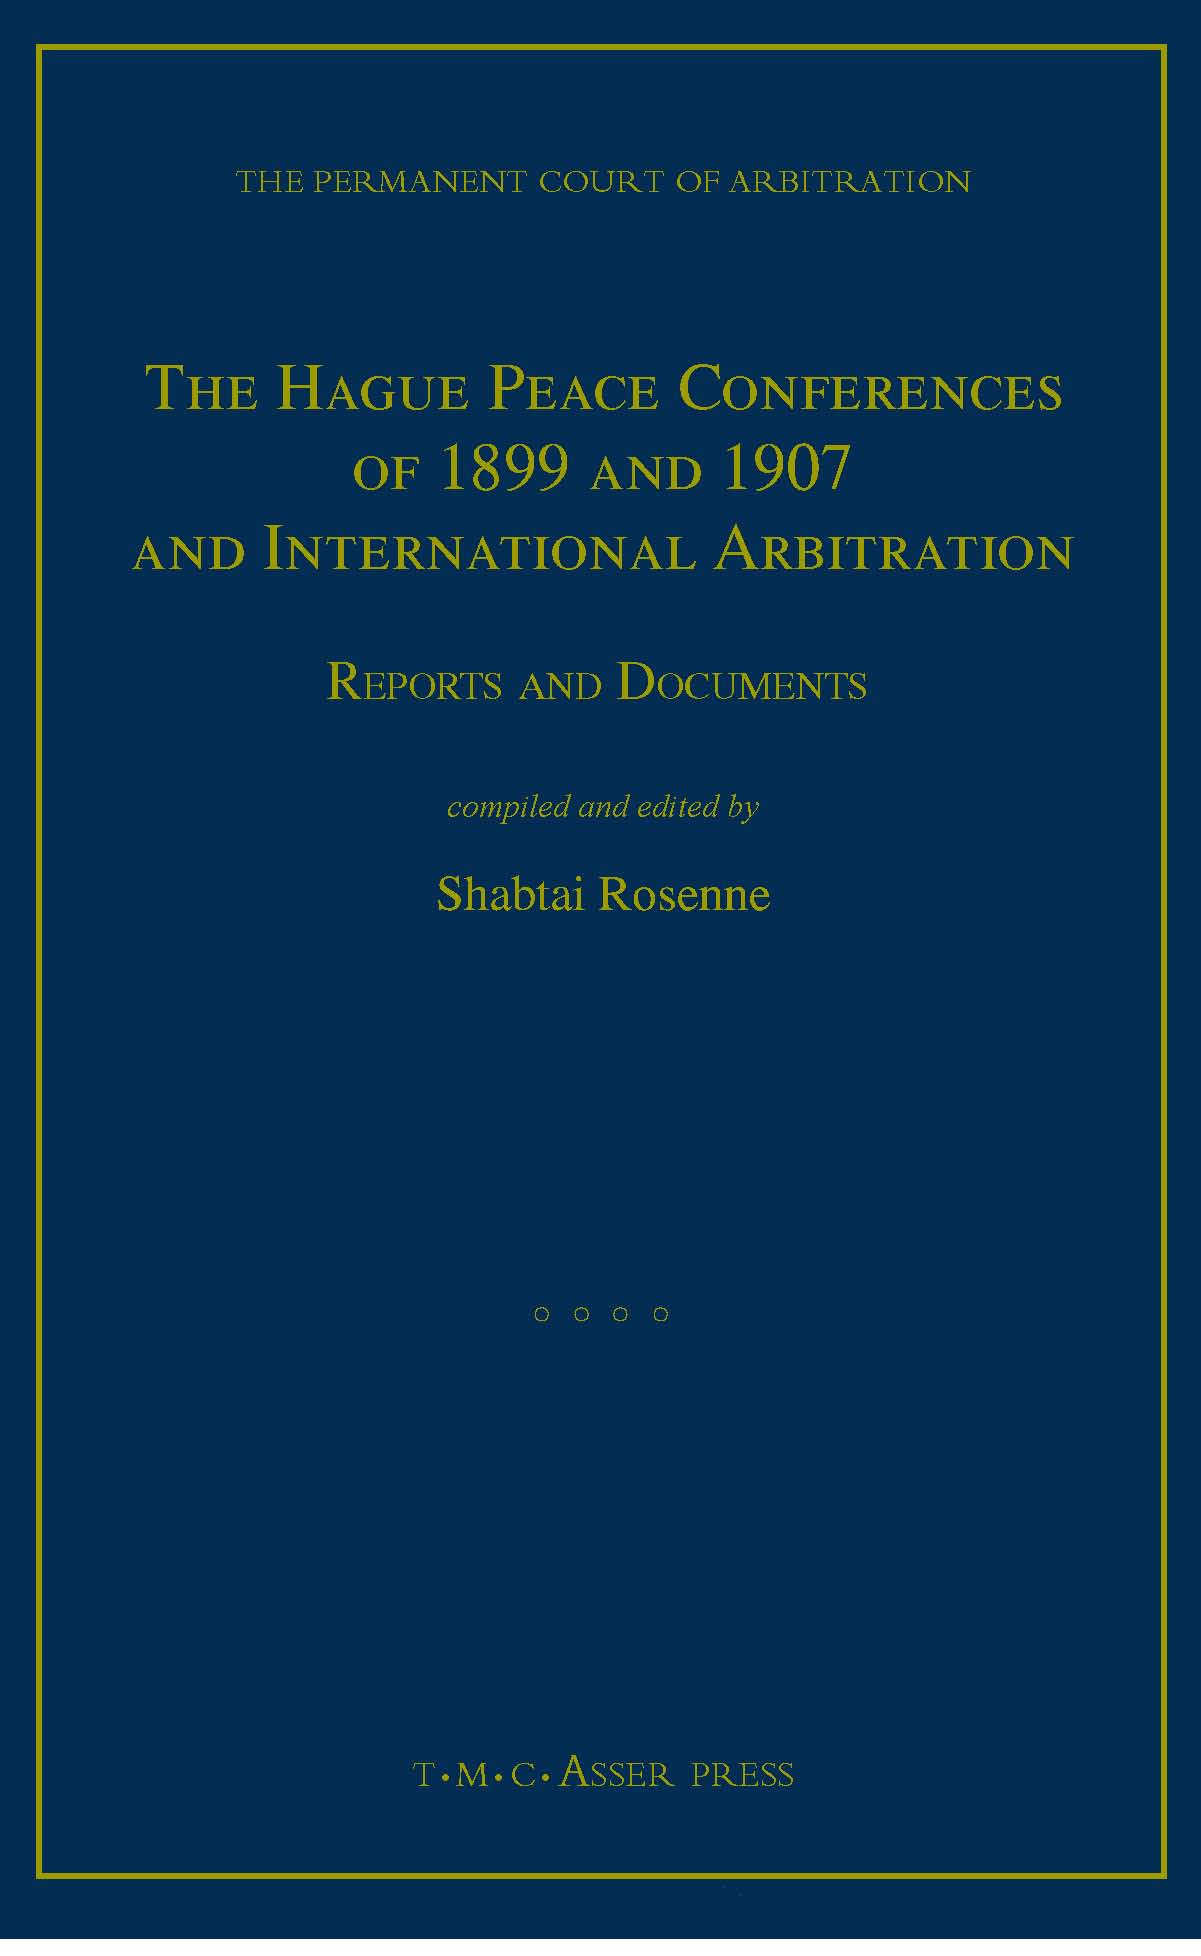 The Hague Peace Conferences of 1899 and 1907 and International Arbitration - Reports and Documents